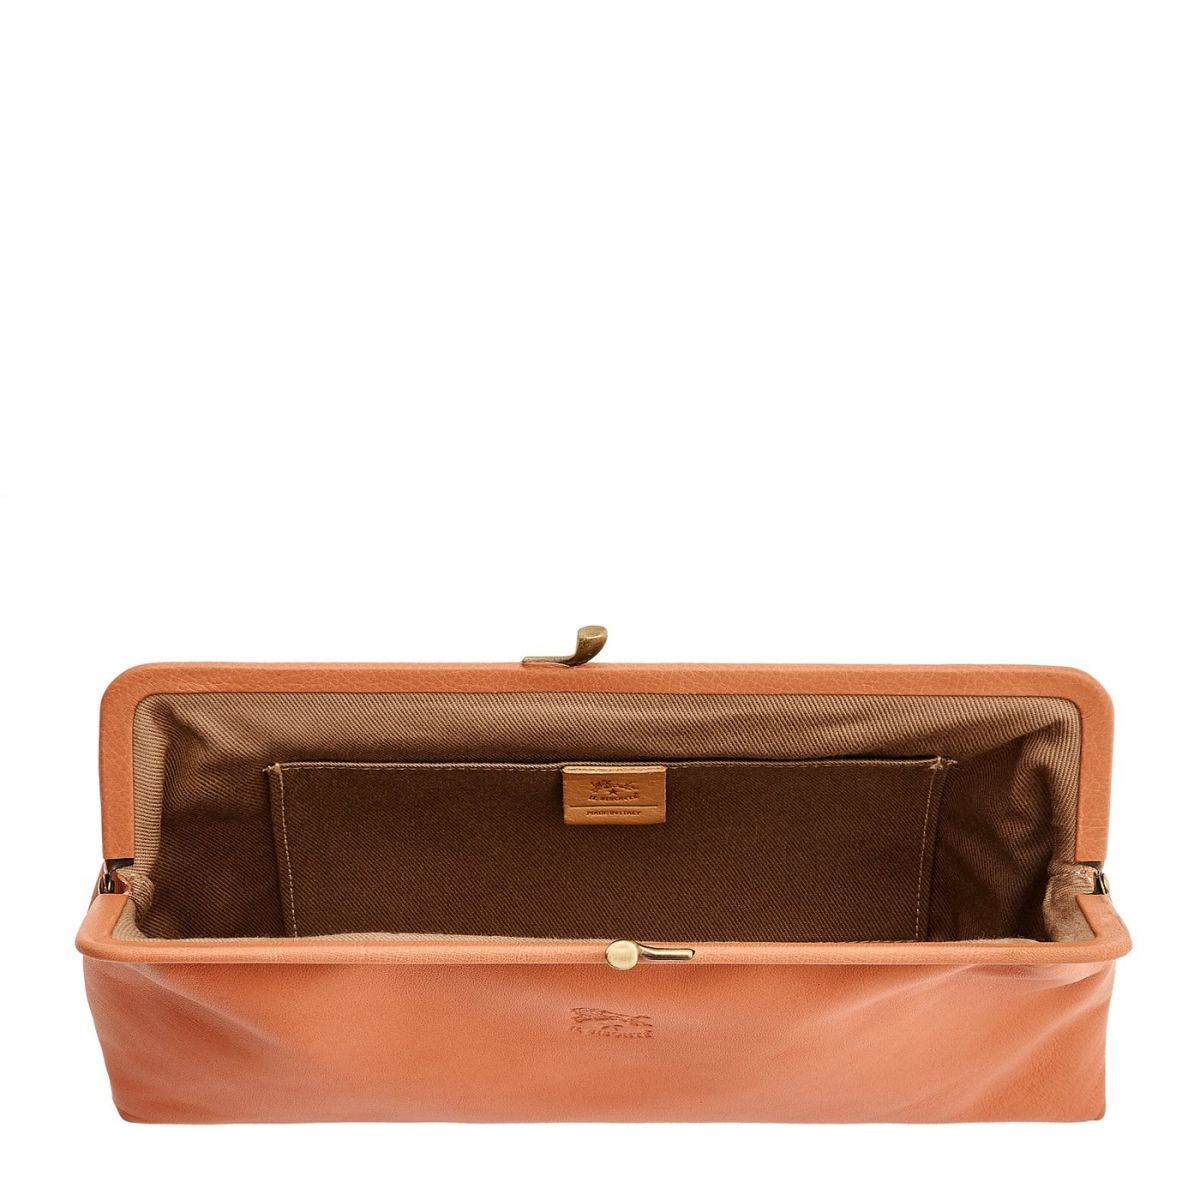 Women's Clutch Bag  in Soft Cowhide Leather BCL027 color Pink Pepper | Details